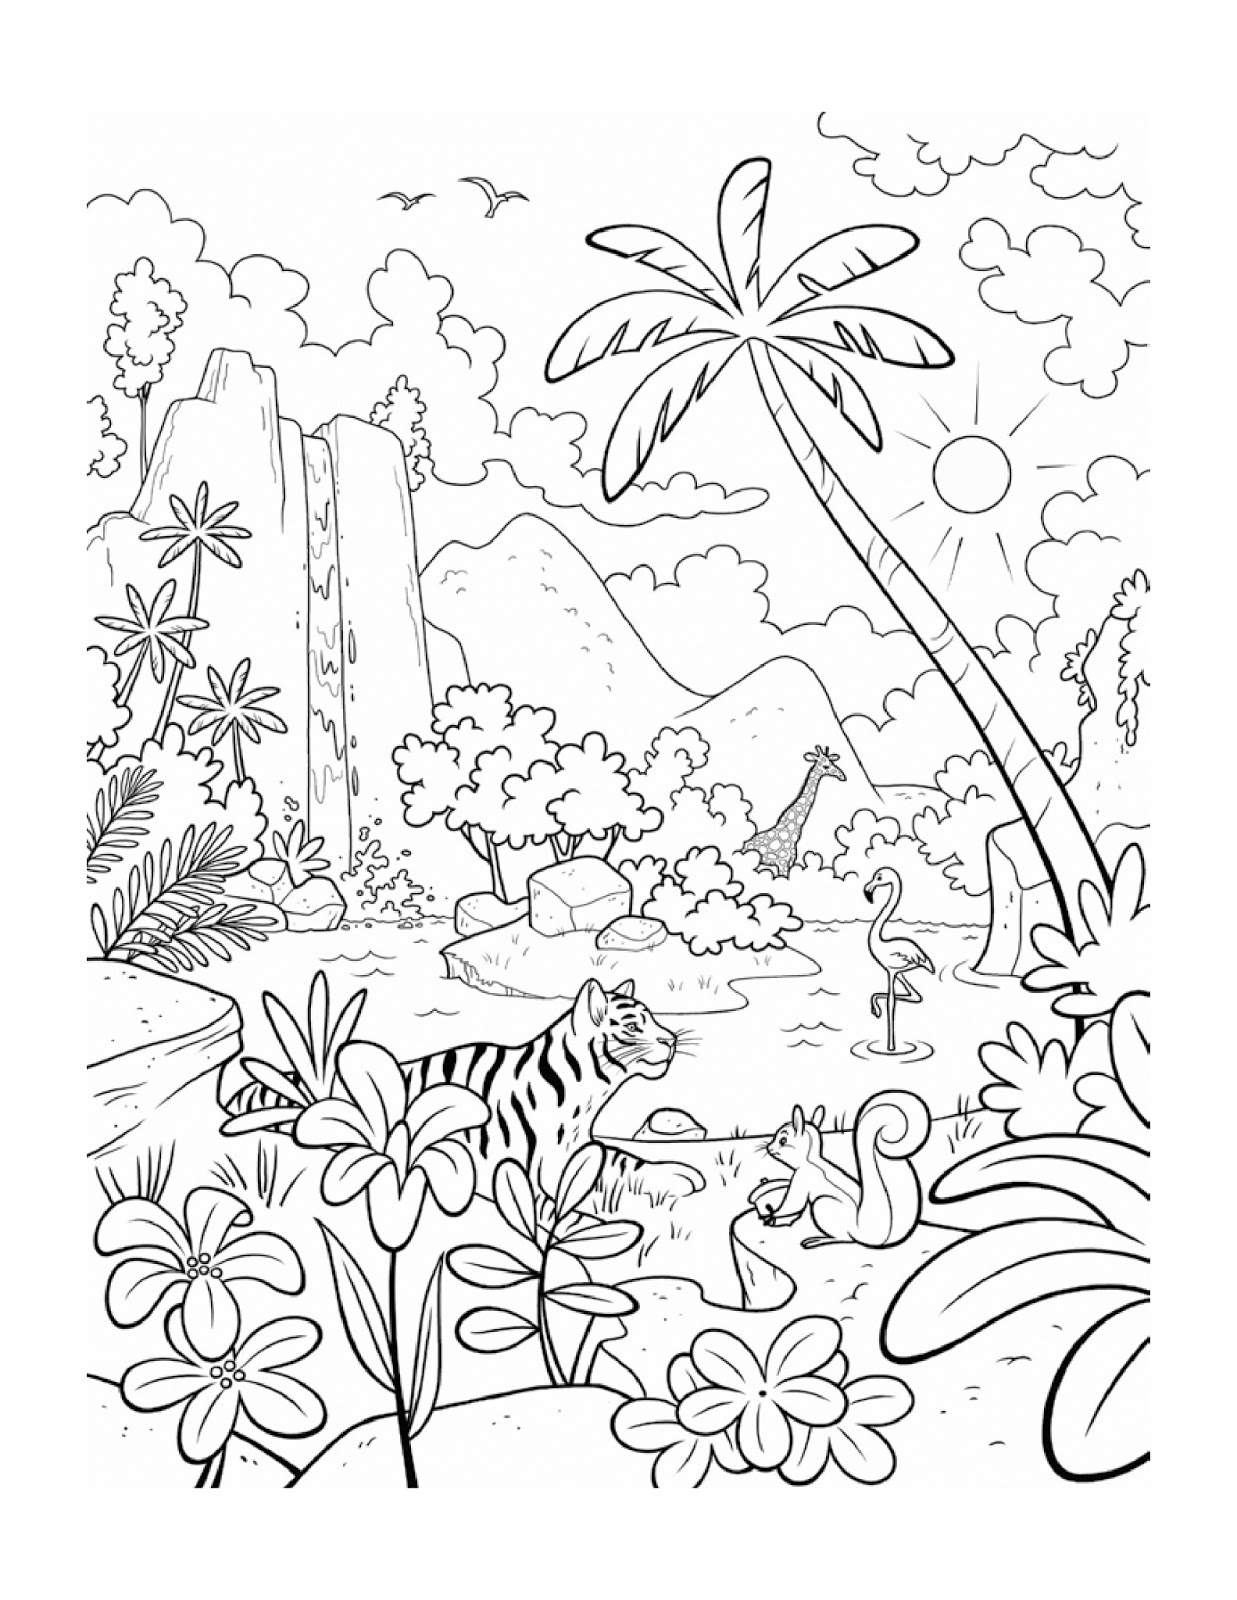 Free Coloring Pages Of Chick Fil A